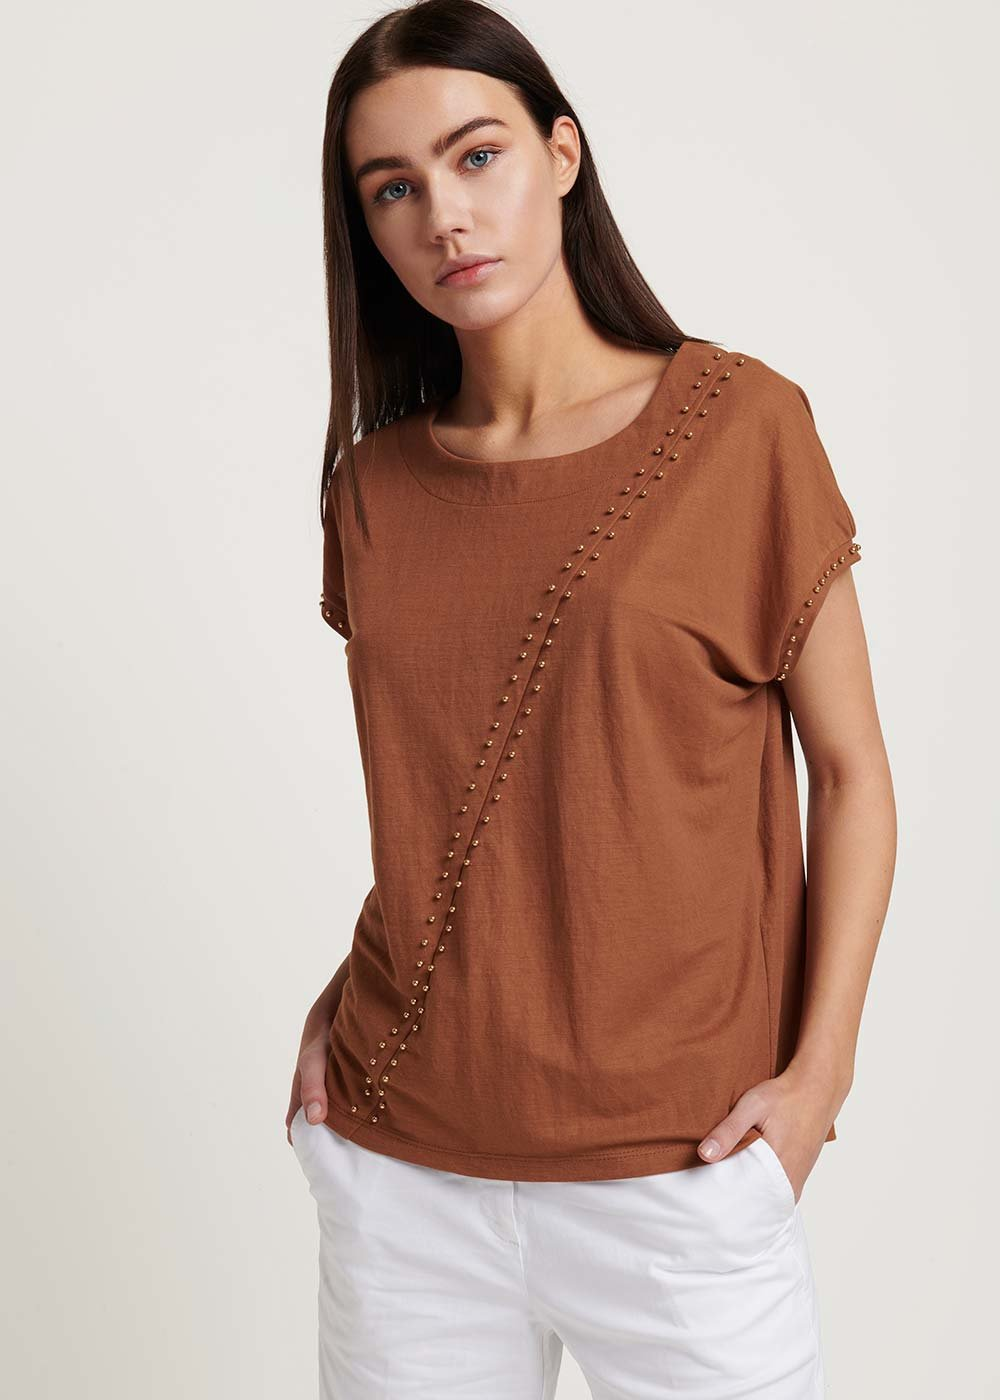 Sabina T-shirt with micro studs - Cocoa - Woman